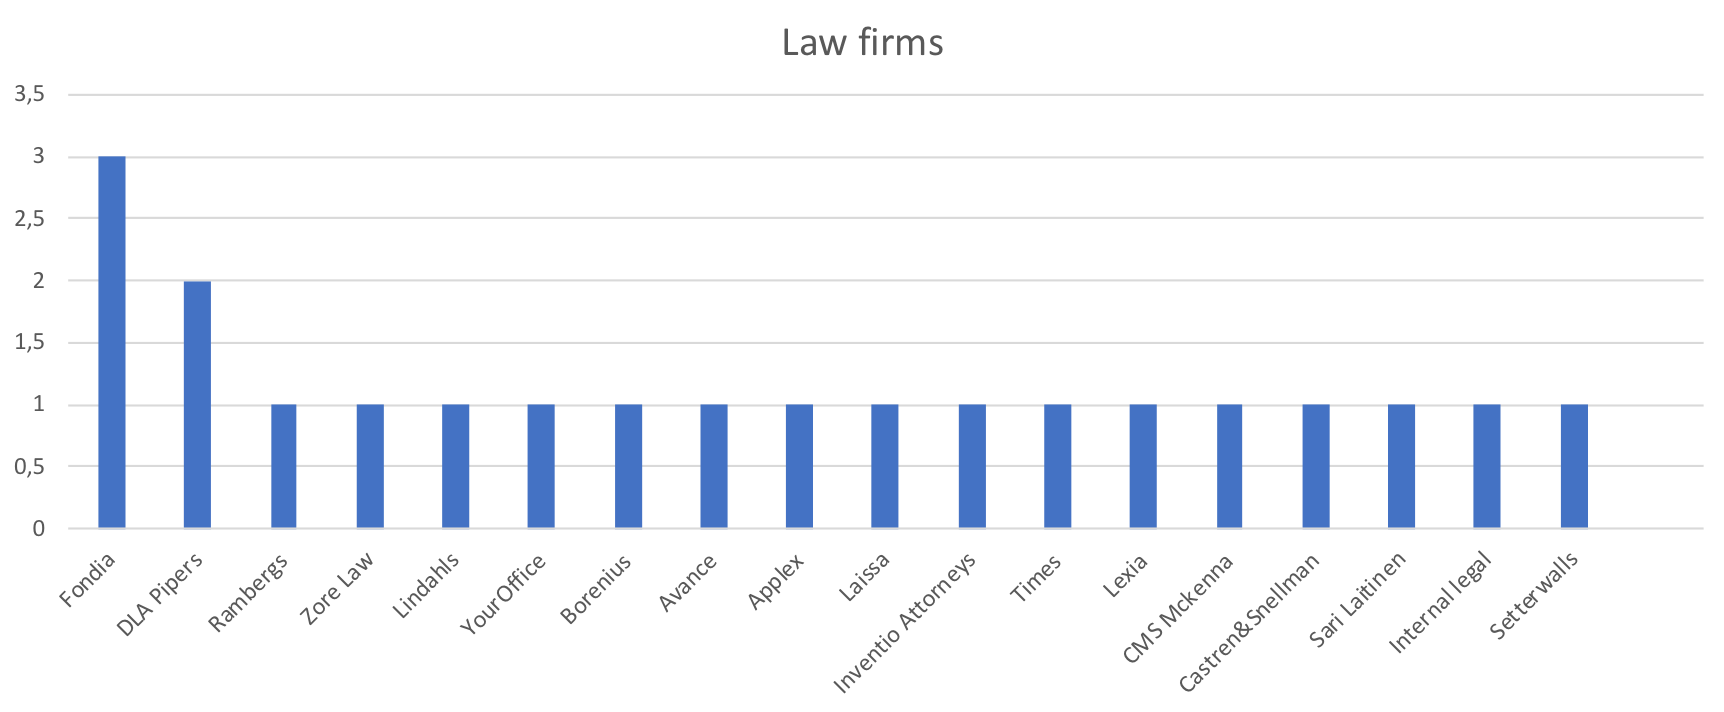 law firms.png